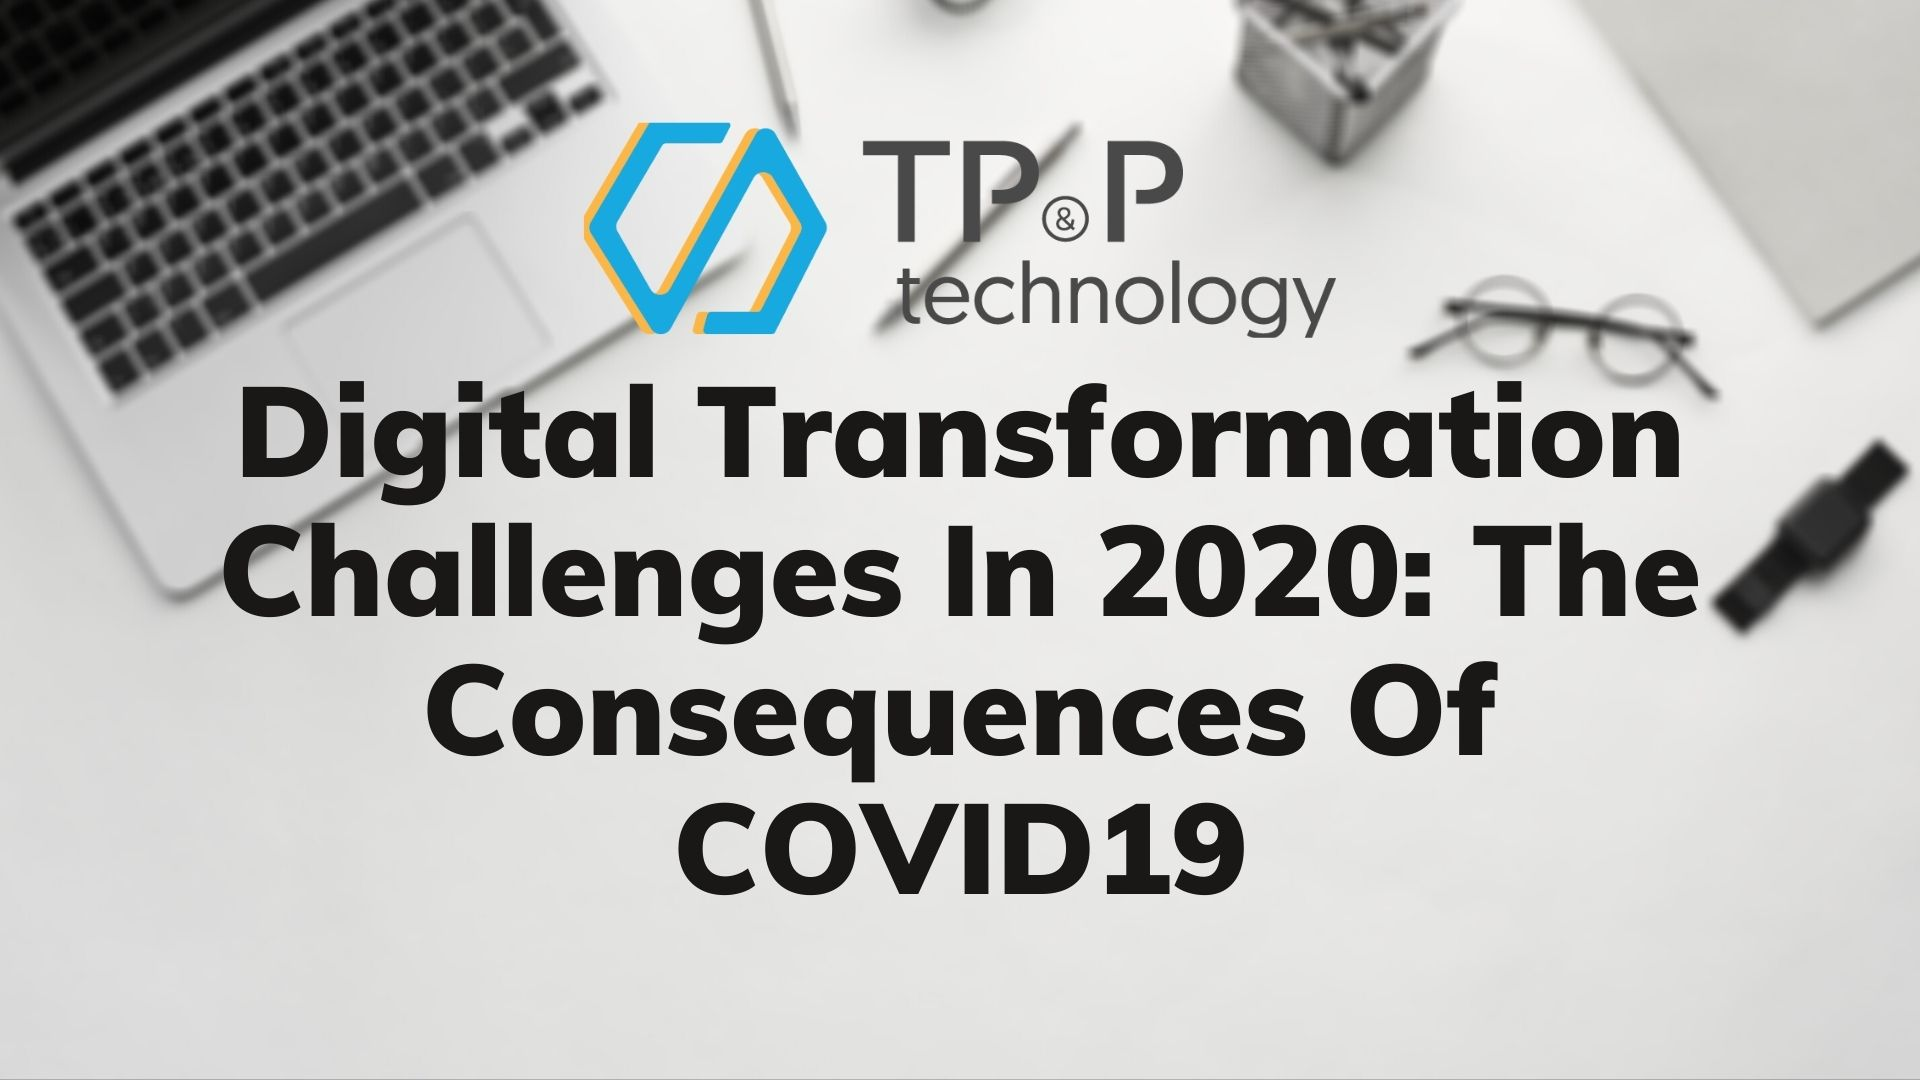 Digital Transformation Challenges In 2020: The Consequences Of COVID 19